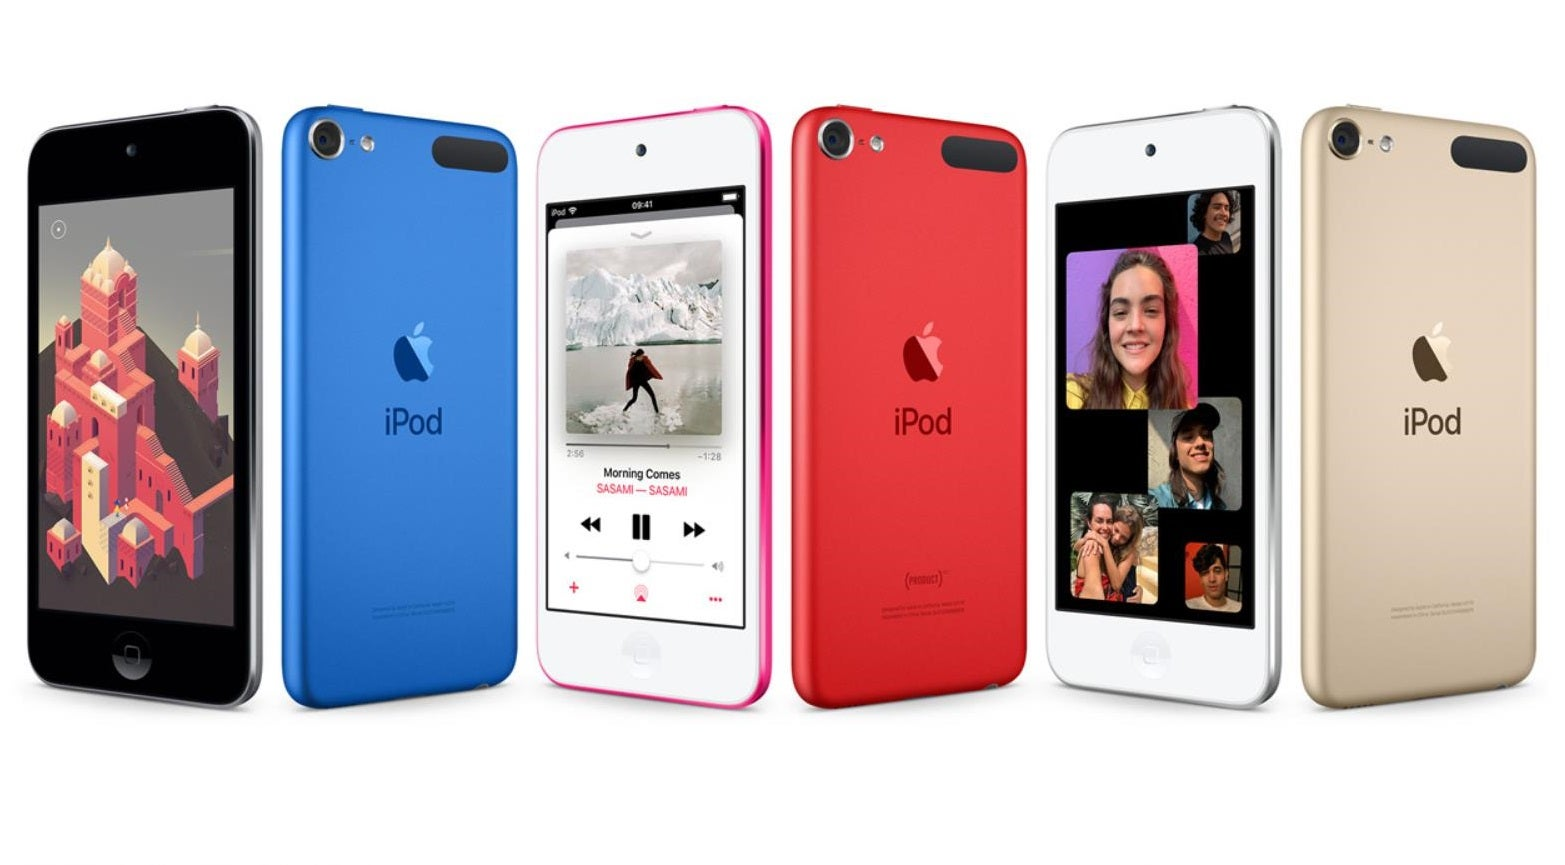 ipod touch generation 7th apple release date specs features iphone